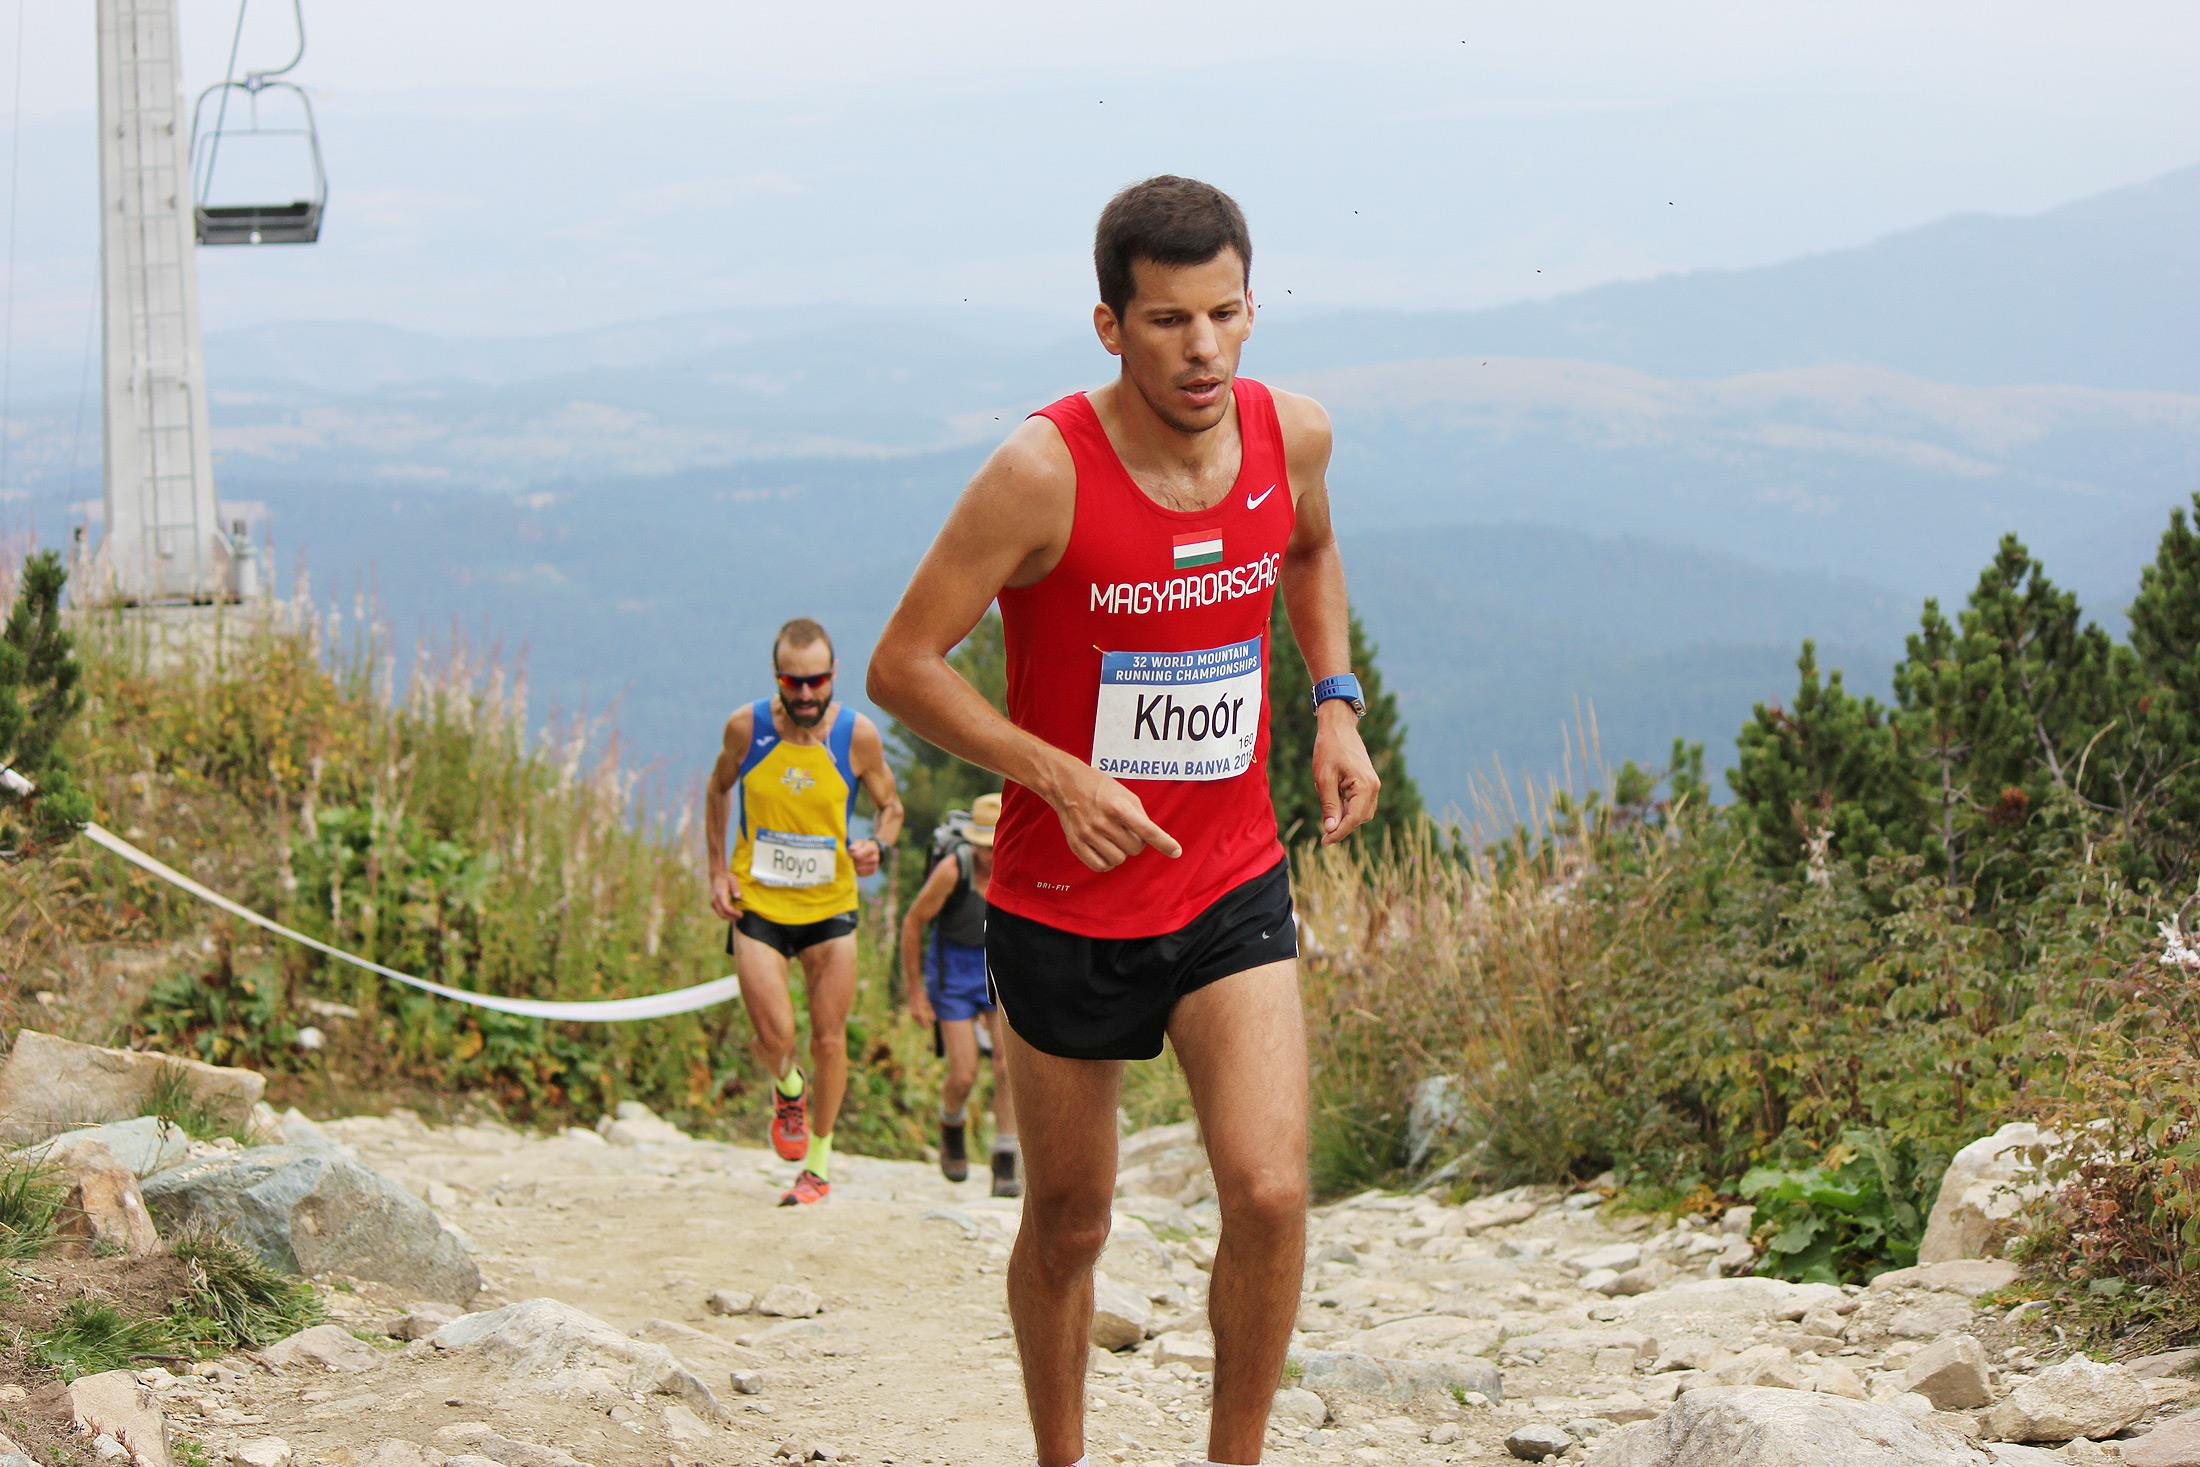 World Mountain Running Championships (Gerry Brady)